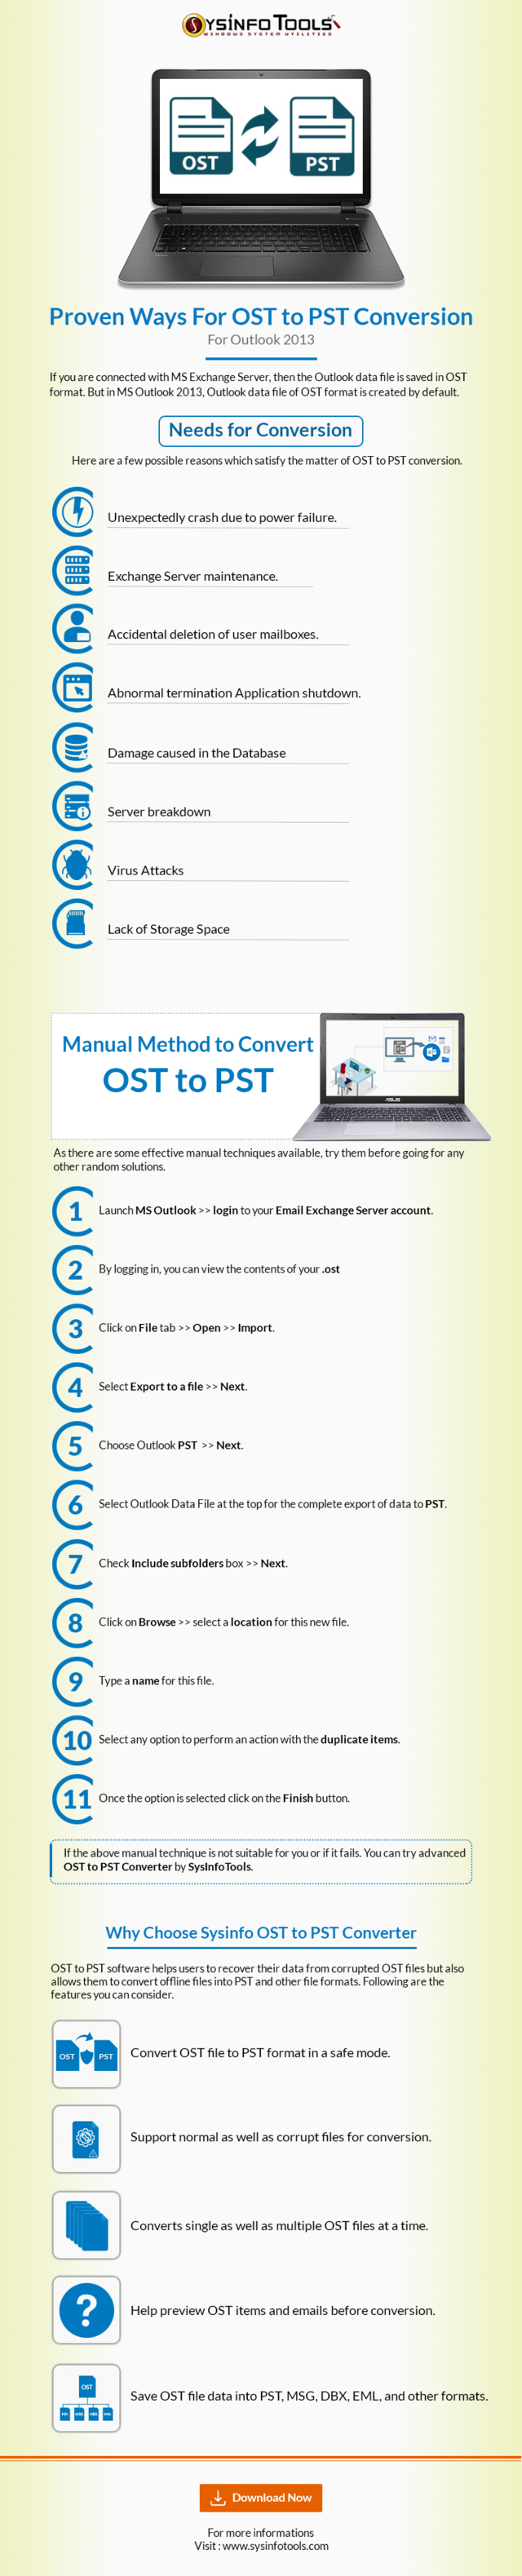 Proven ways for ost to pst conversion for outlook 2013 (2)